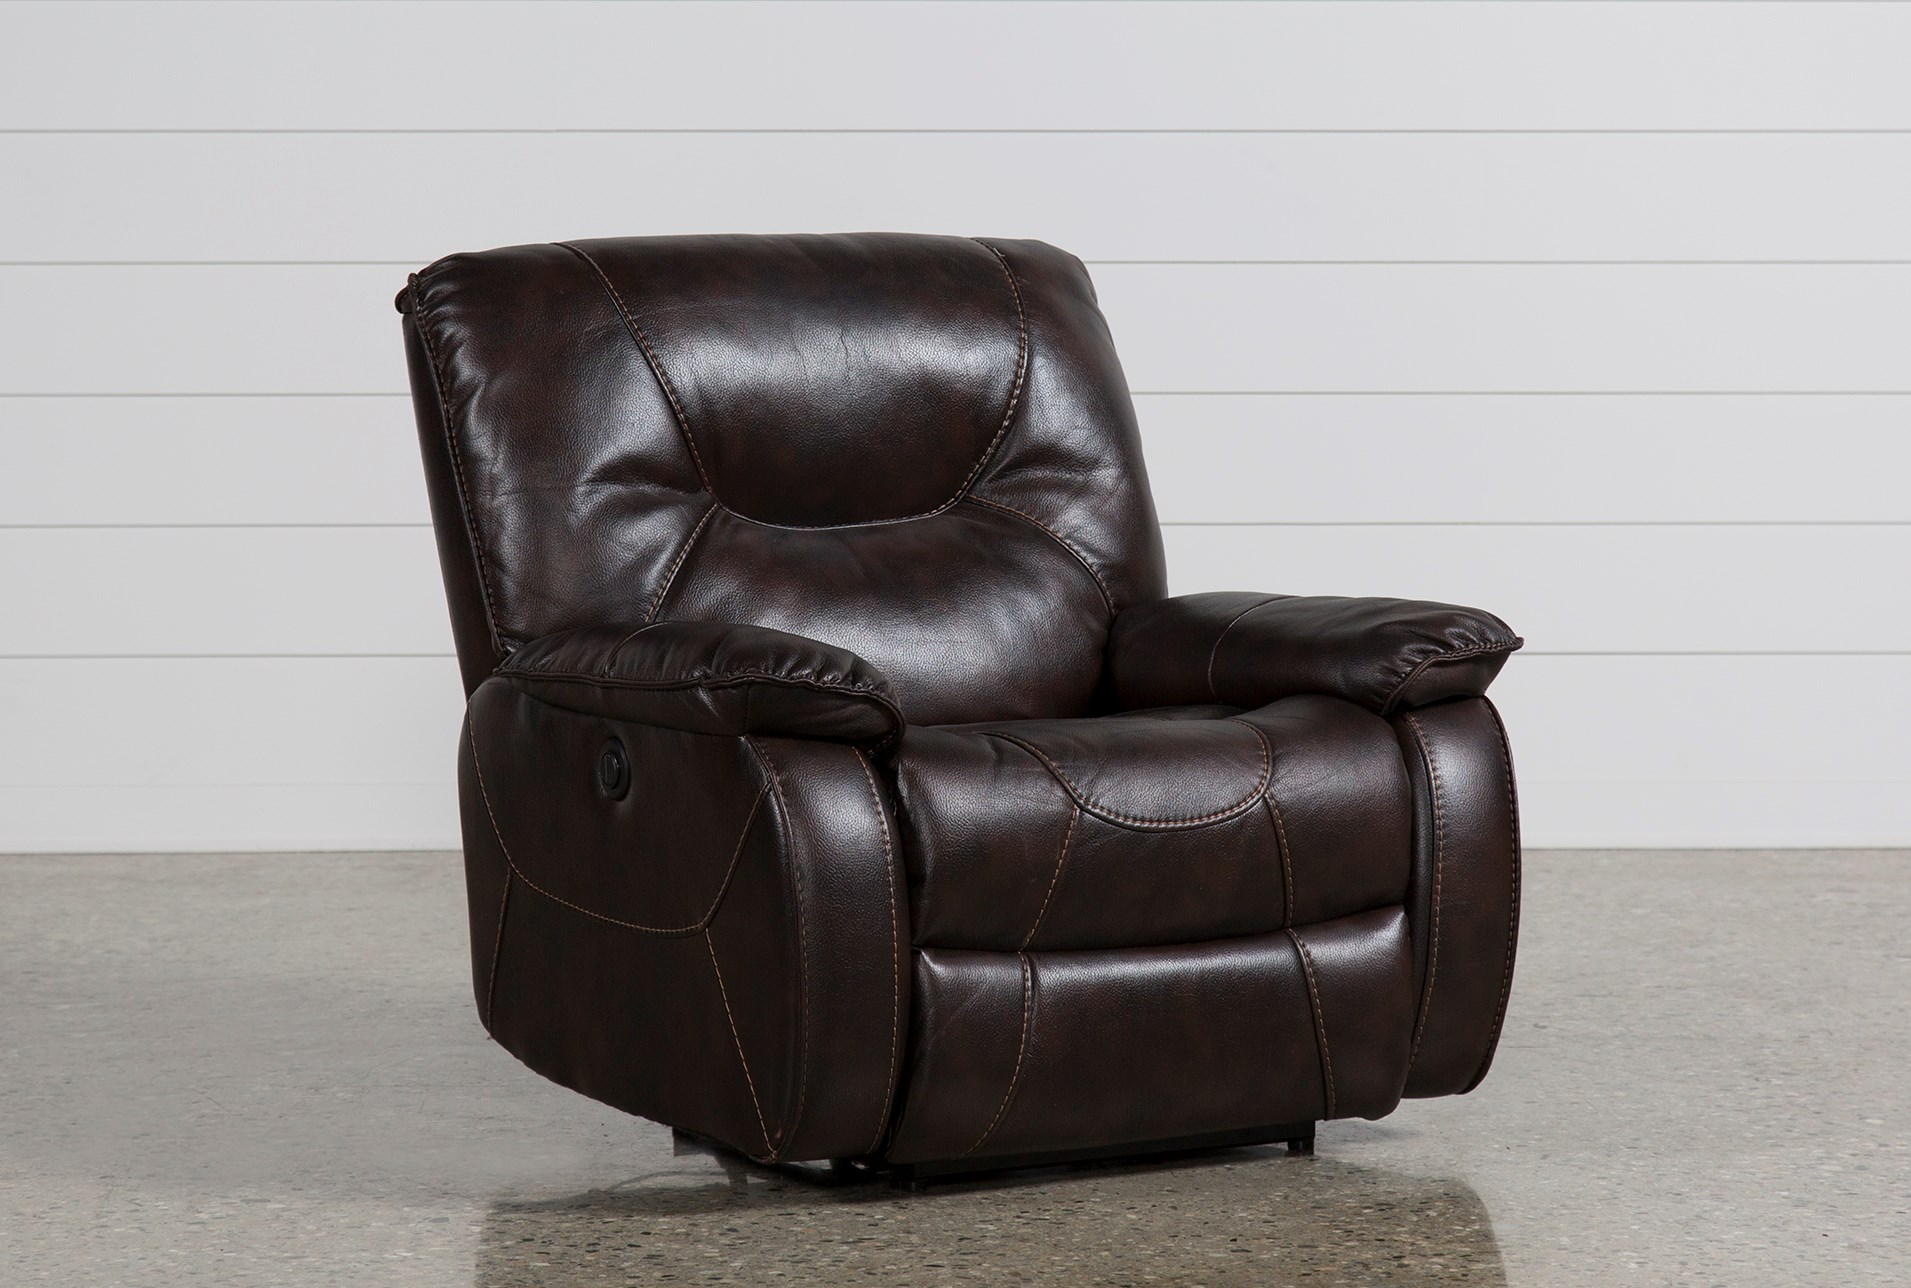 office recliners. Display Product Reviews For TYSON NUTMEG POWER RECLINER Office Recliners R